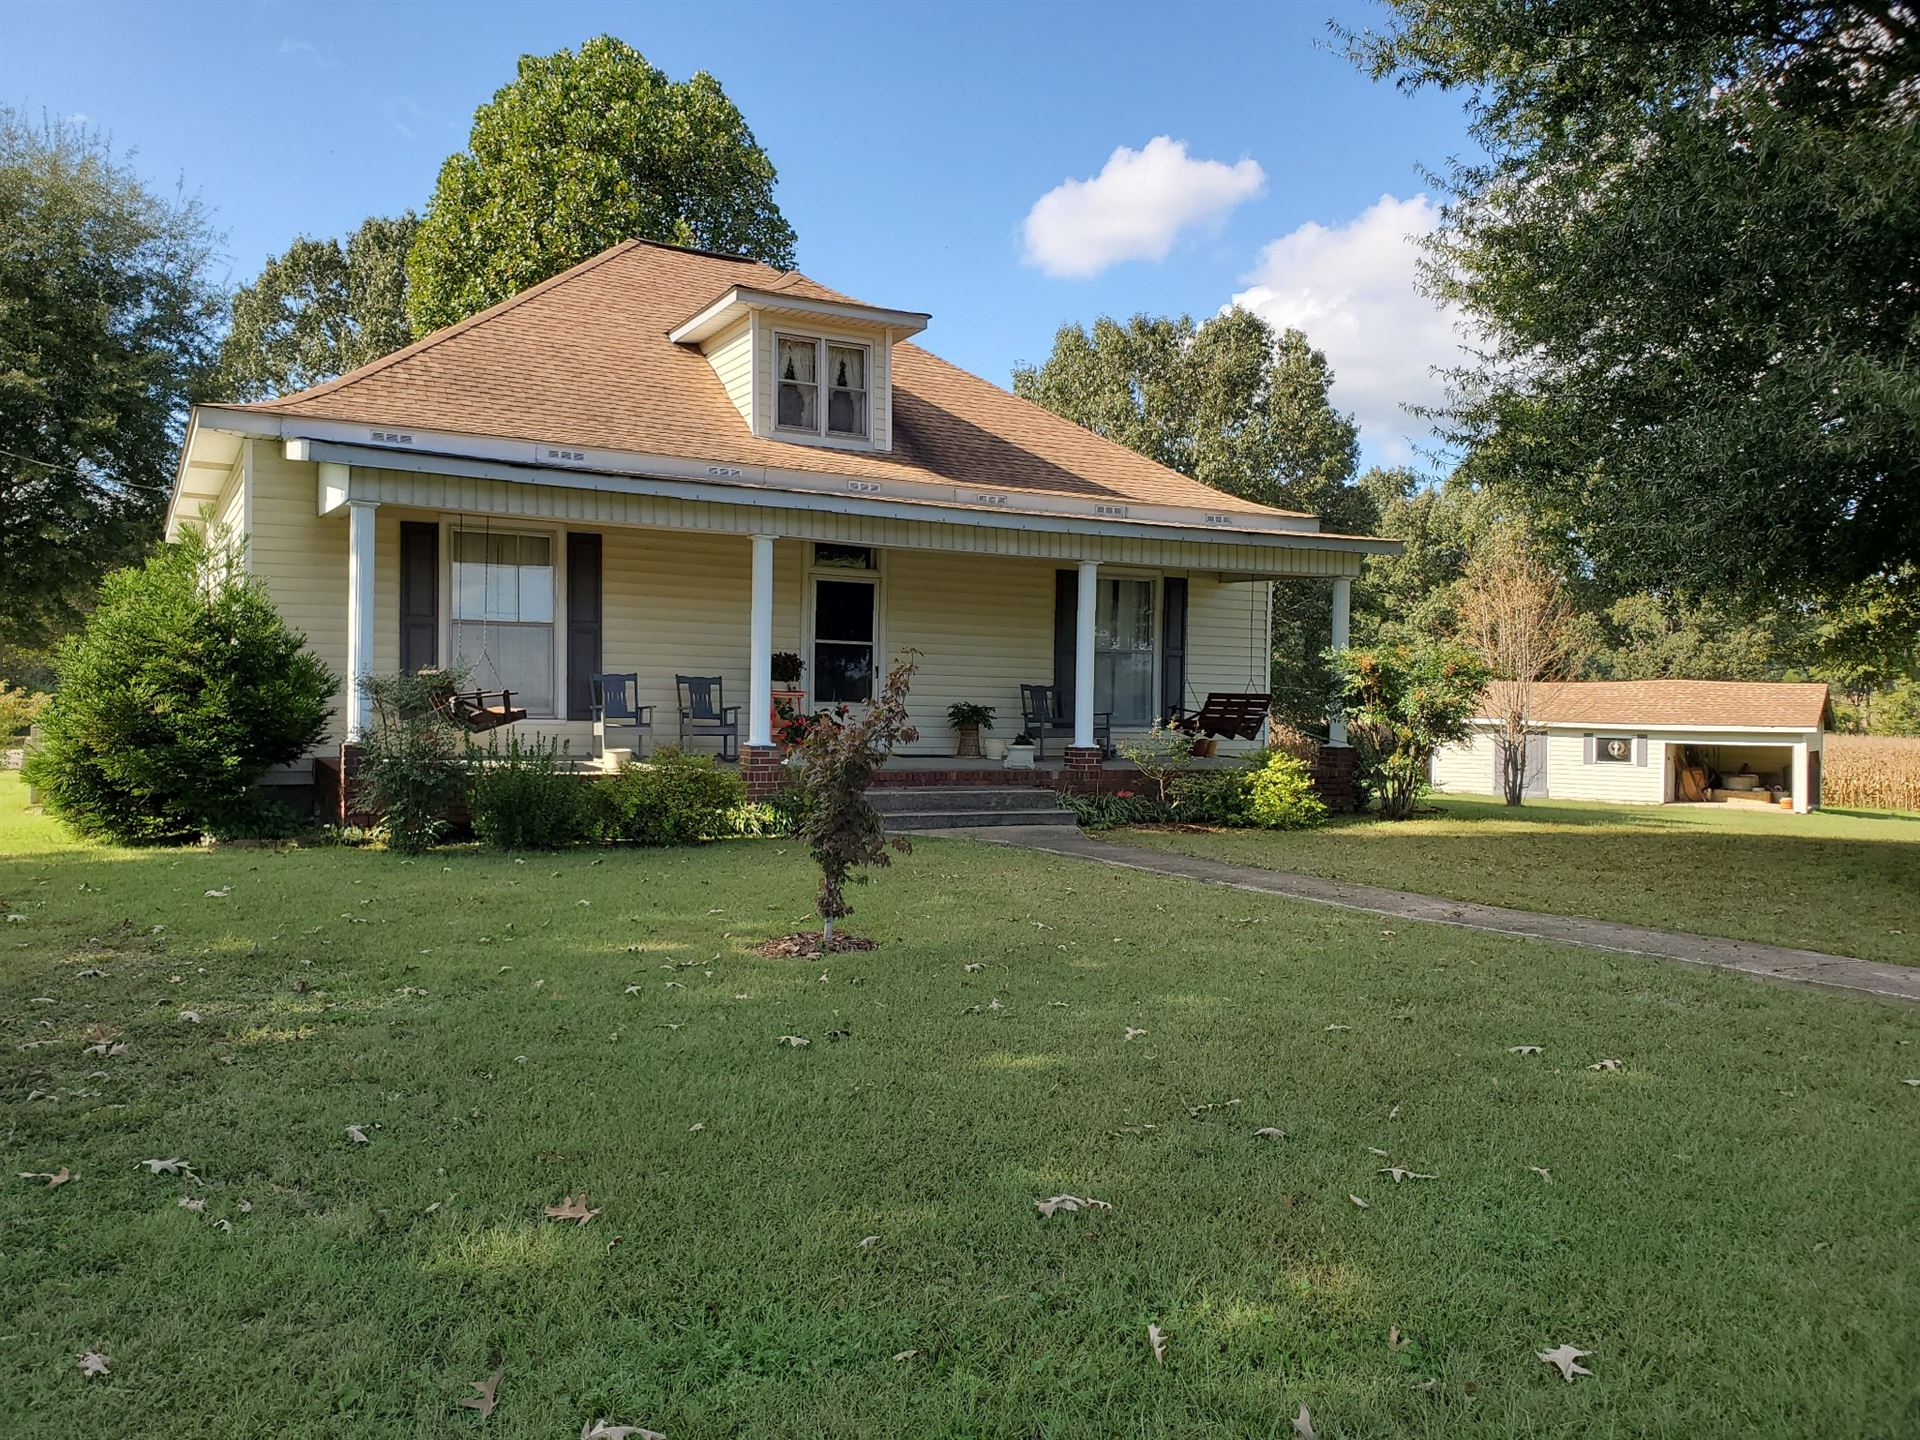 7704 Old State Route 1, New Johnsonville, TN 37134 - MLS#: 2298647